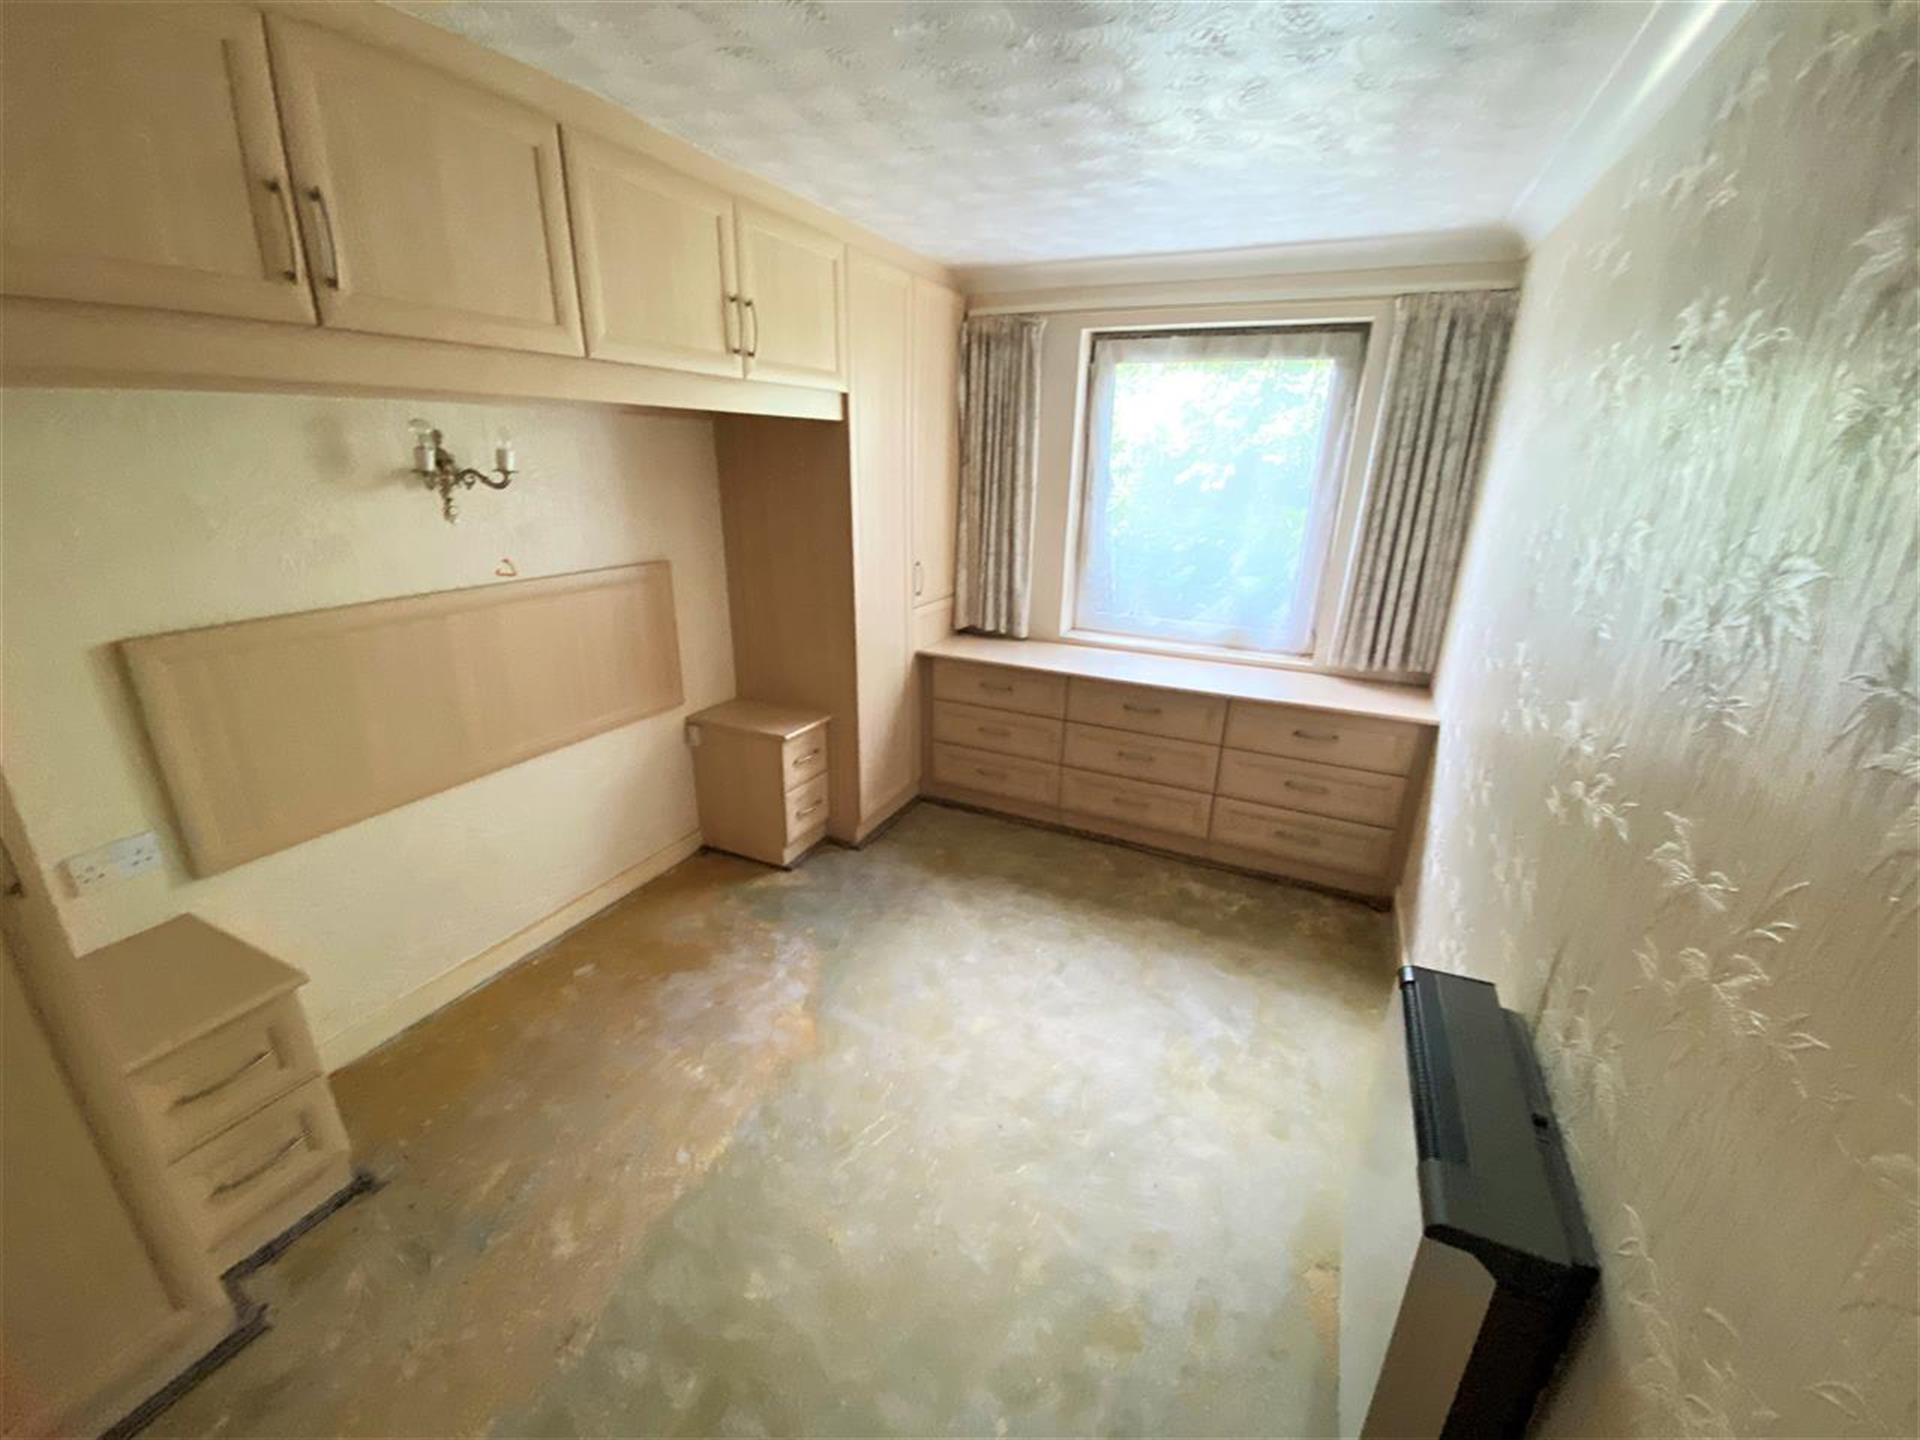 1 Bedroom Apartment Flat / Apartment For Sale - Bedroom